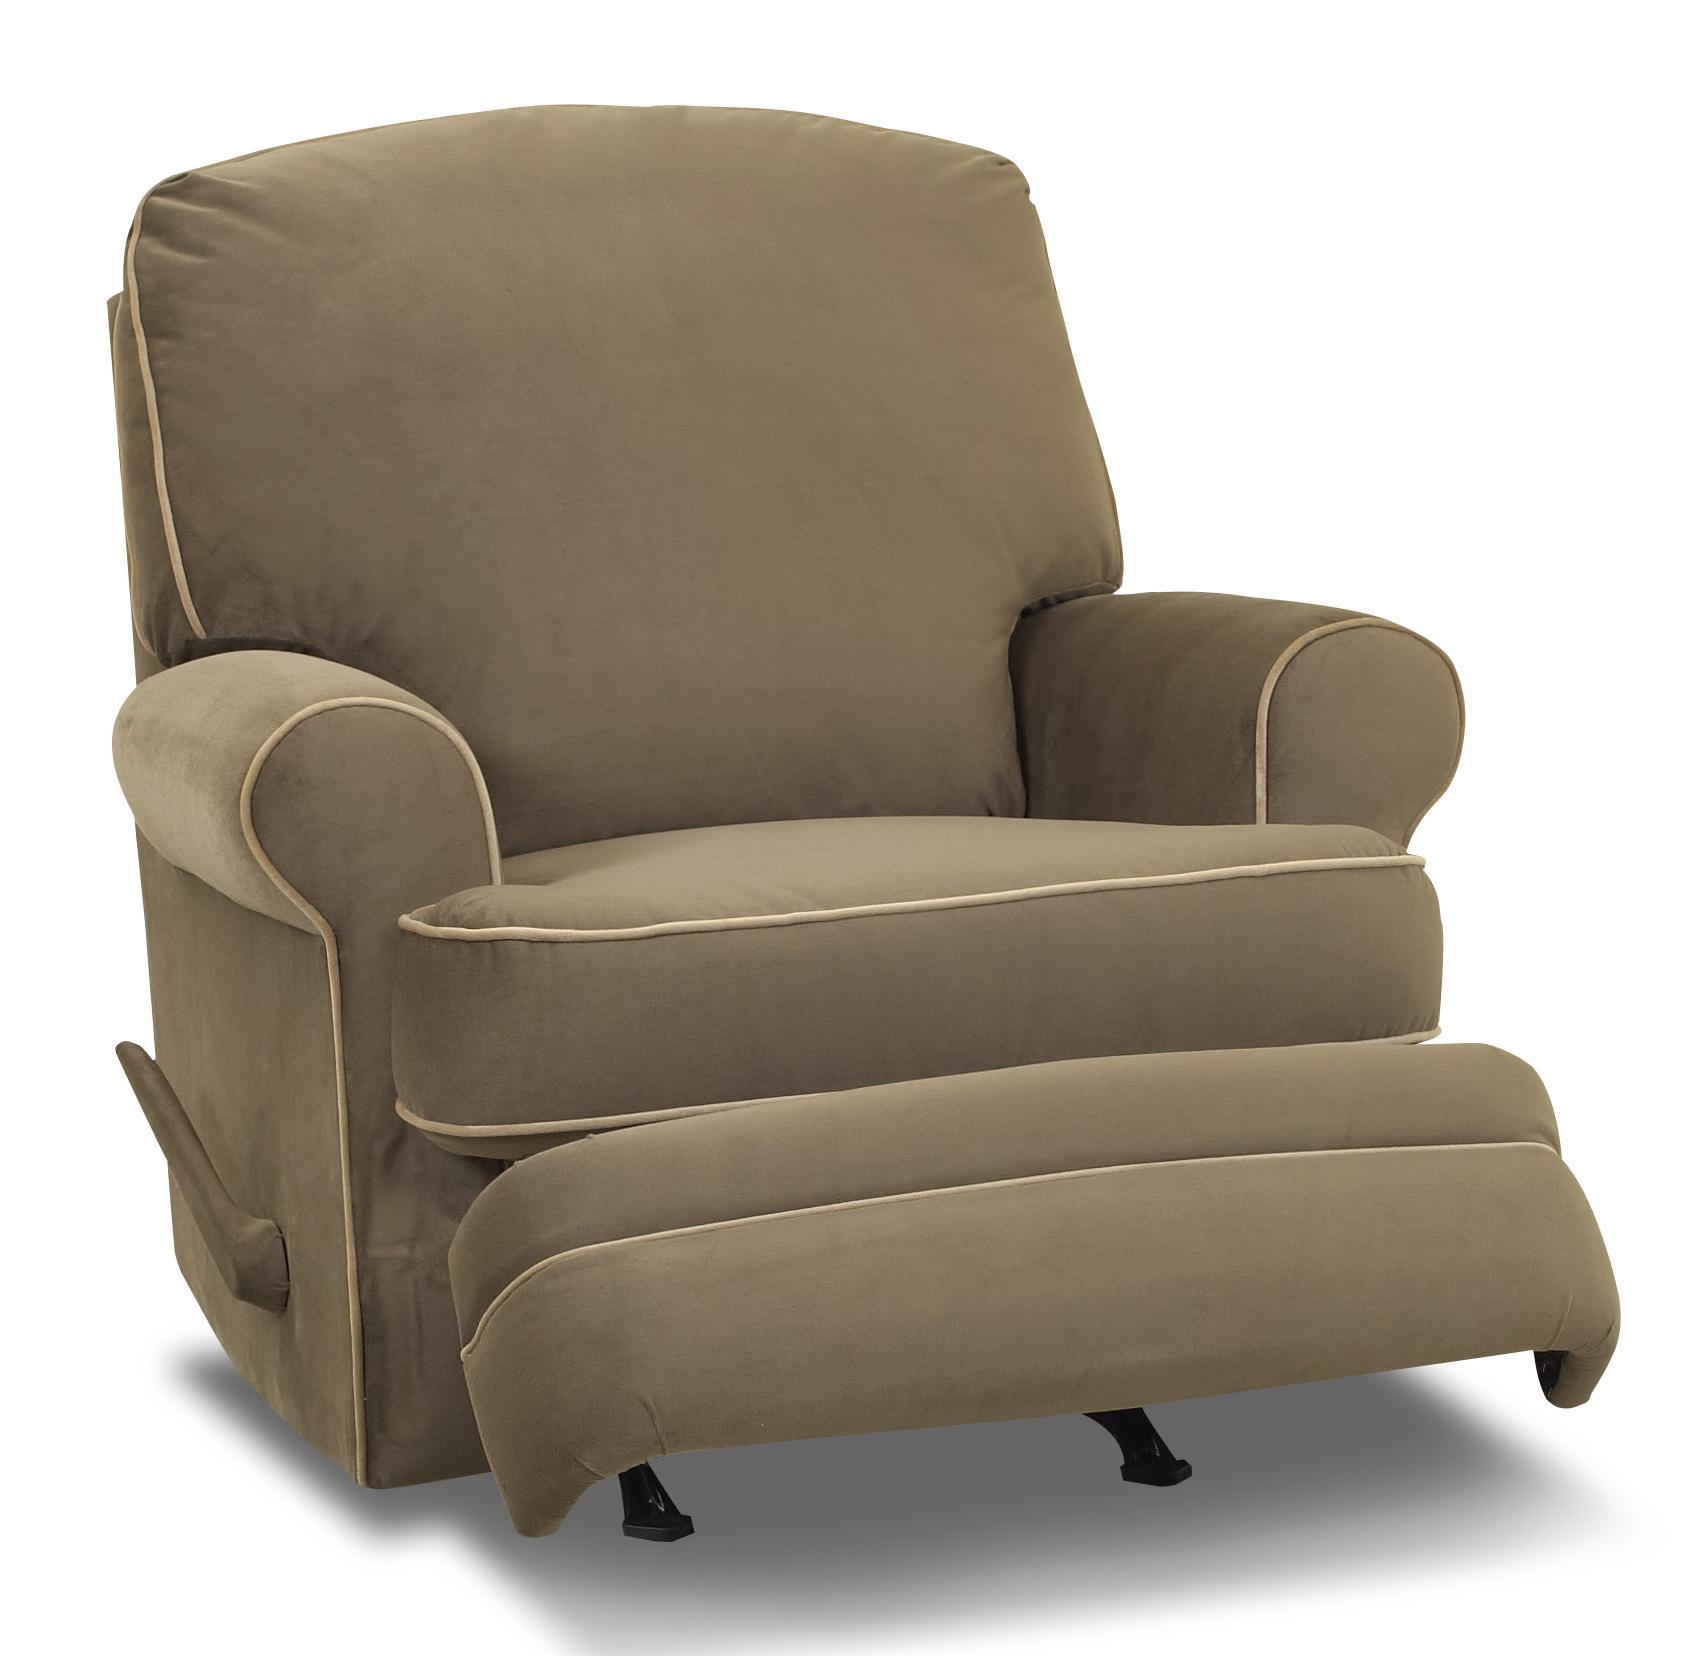 Rocking Reclining Chair By Klaussner Wolf And Gardiner Wolf Furniture